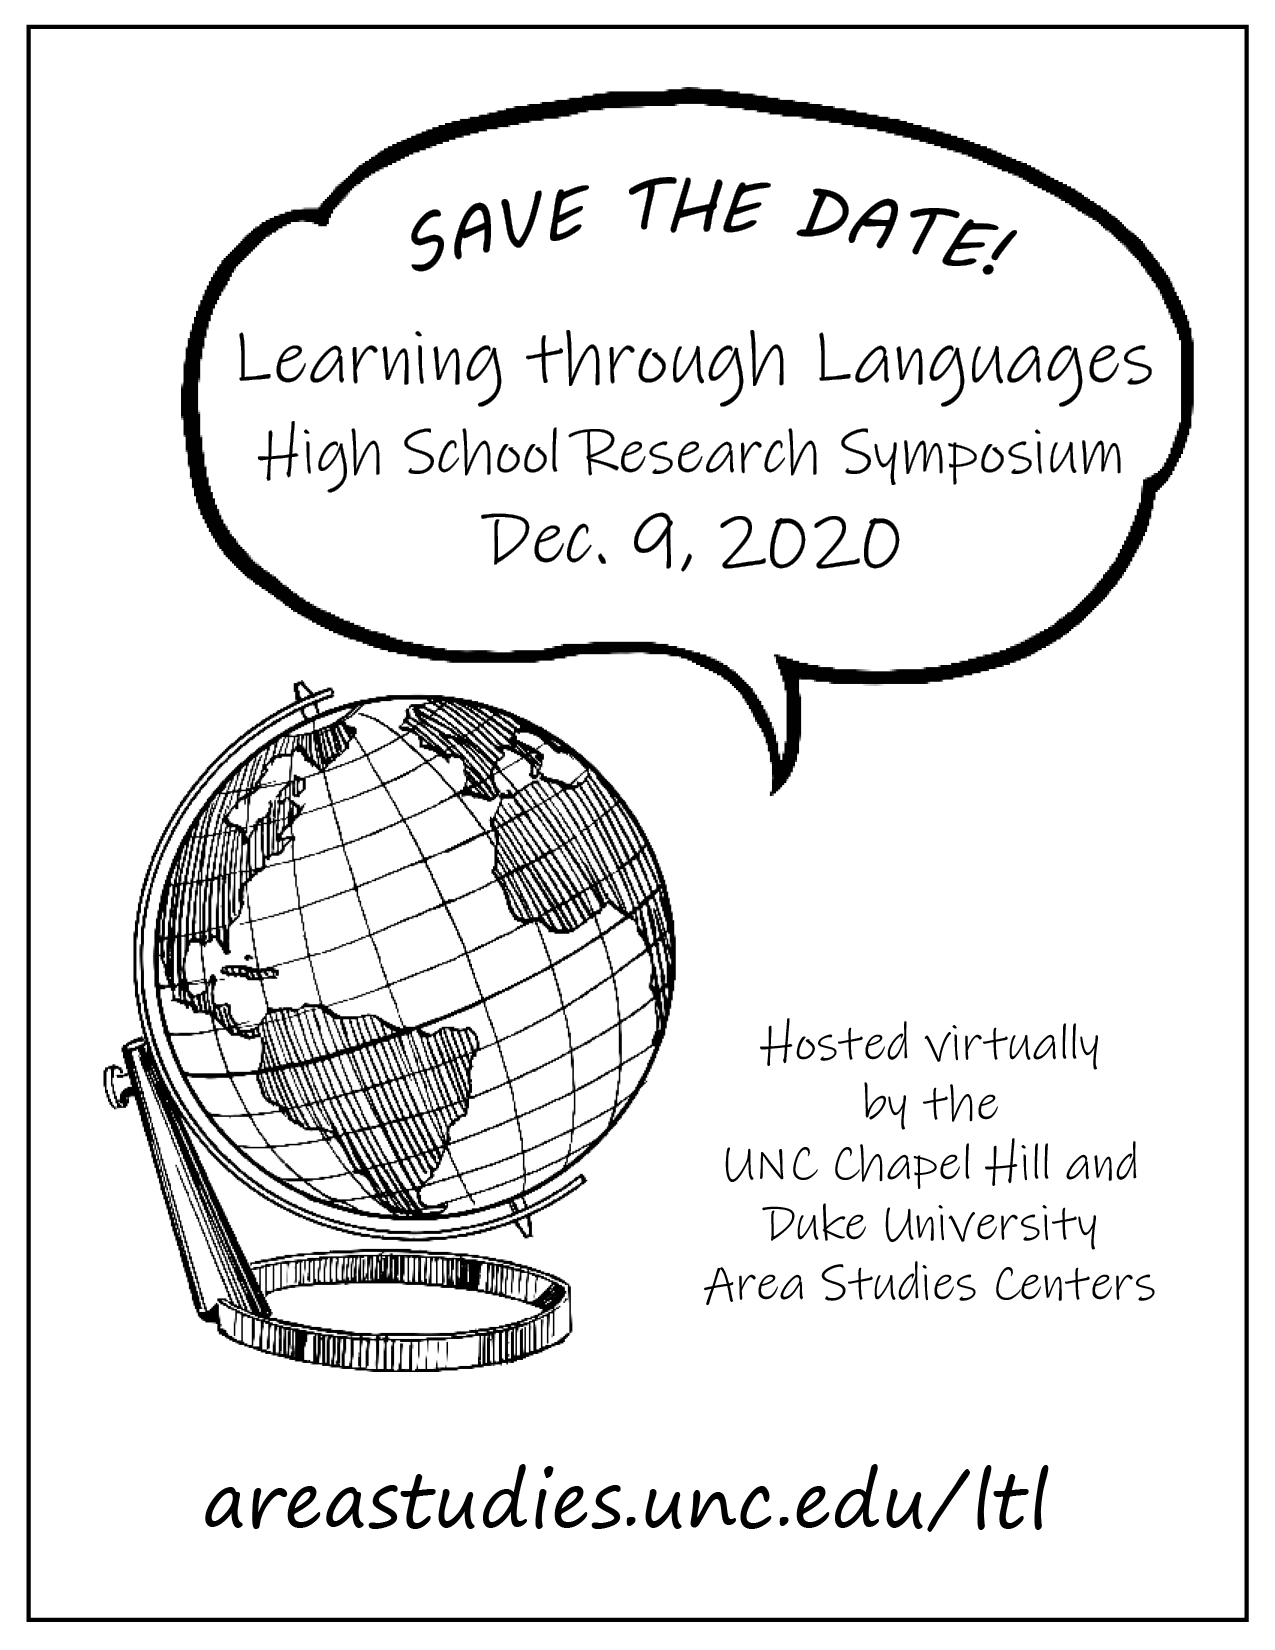 Learning Through Languages High School Research Symposium